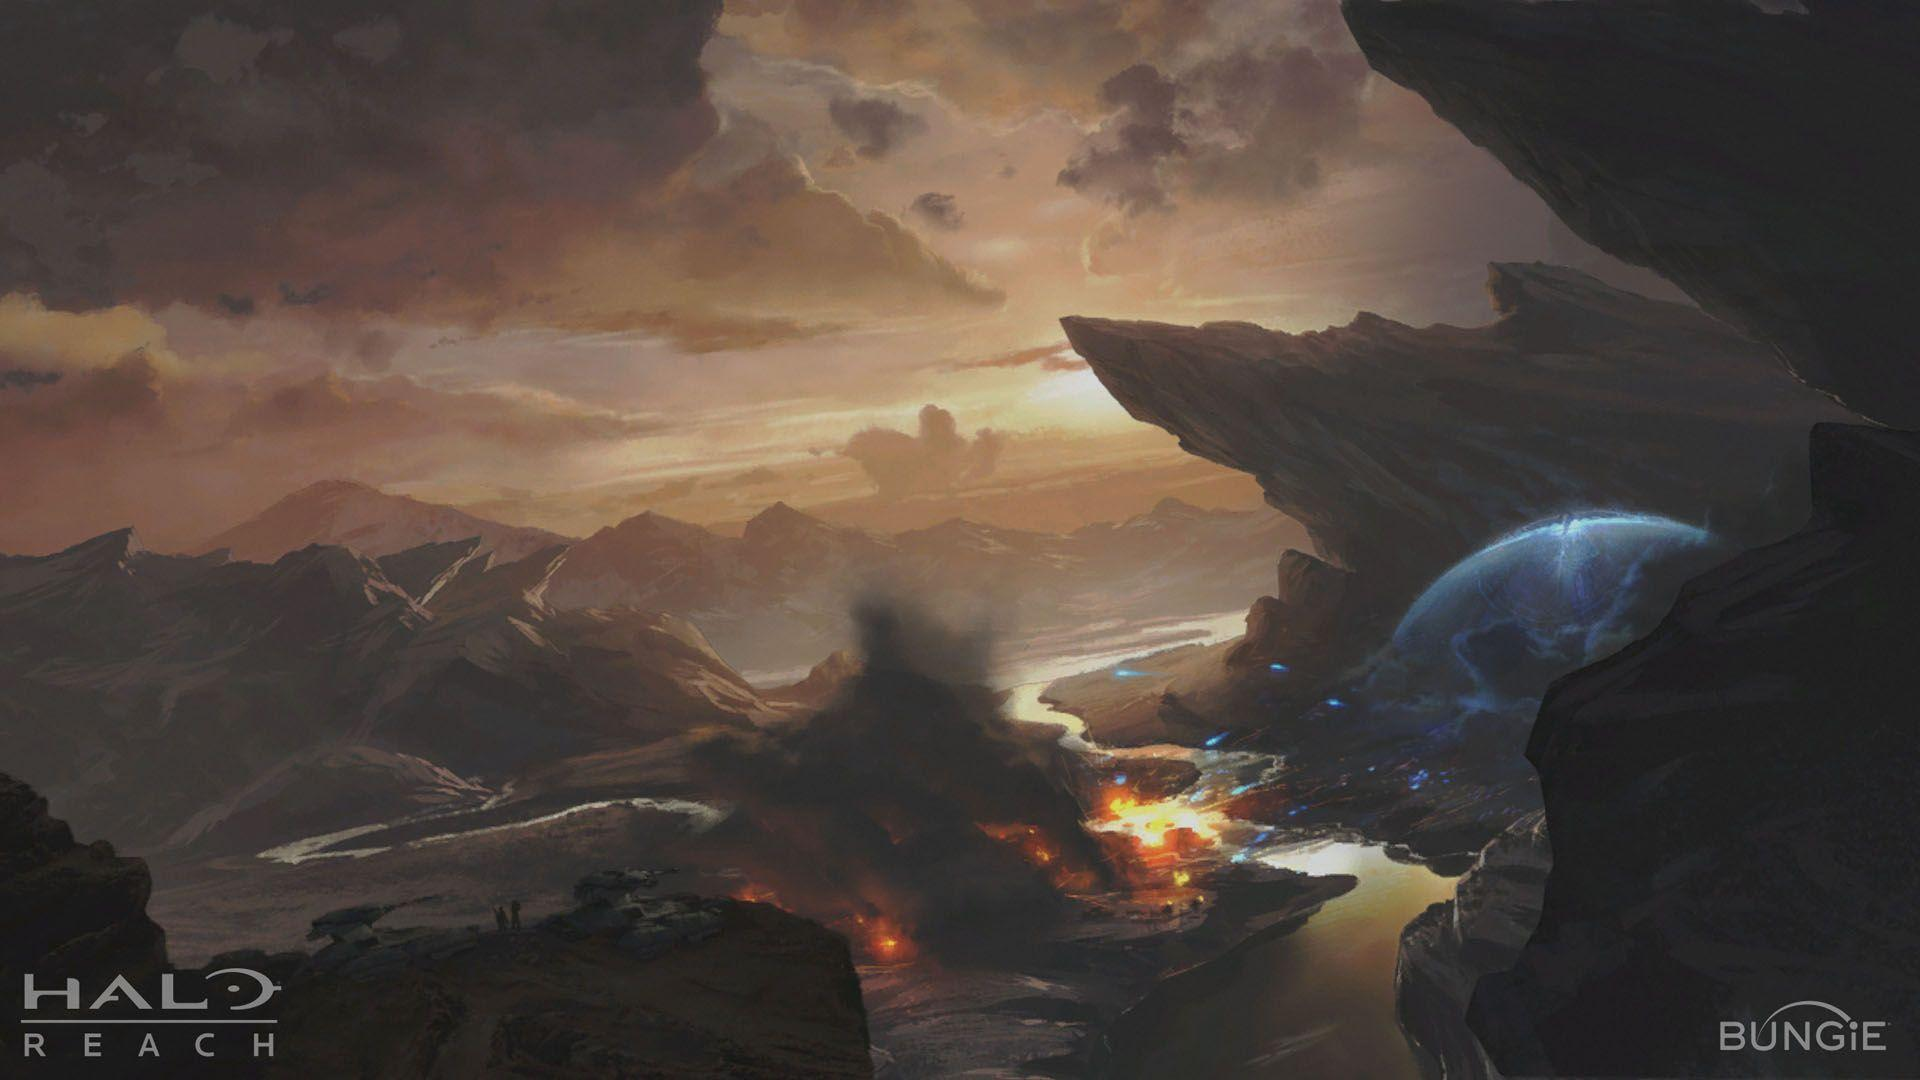 halo wars battles wallpaper - photo #31